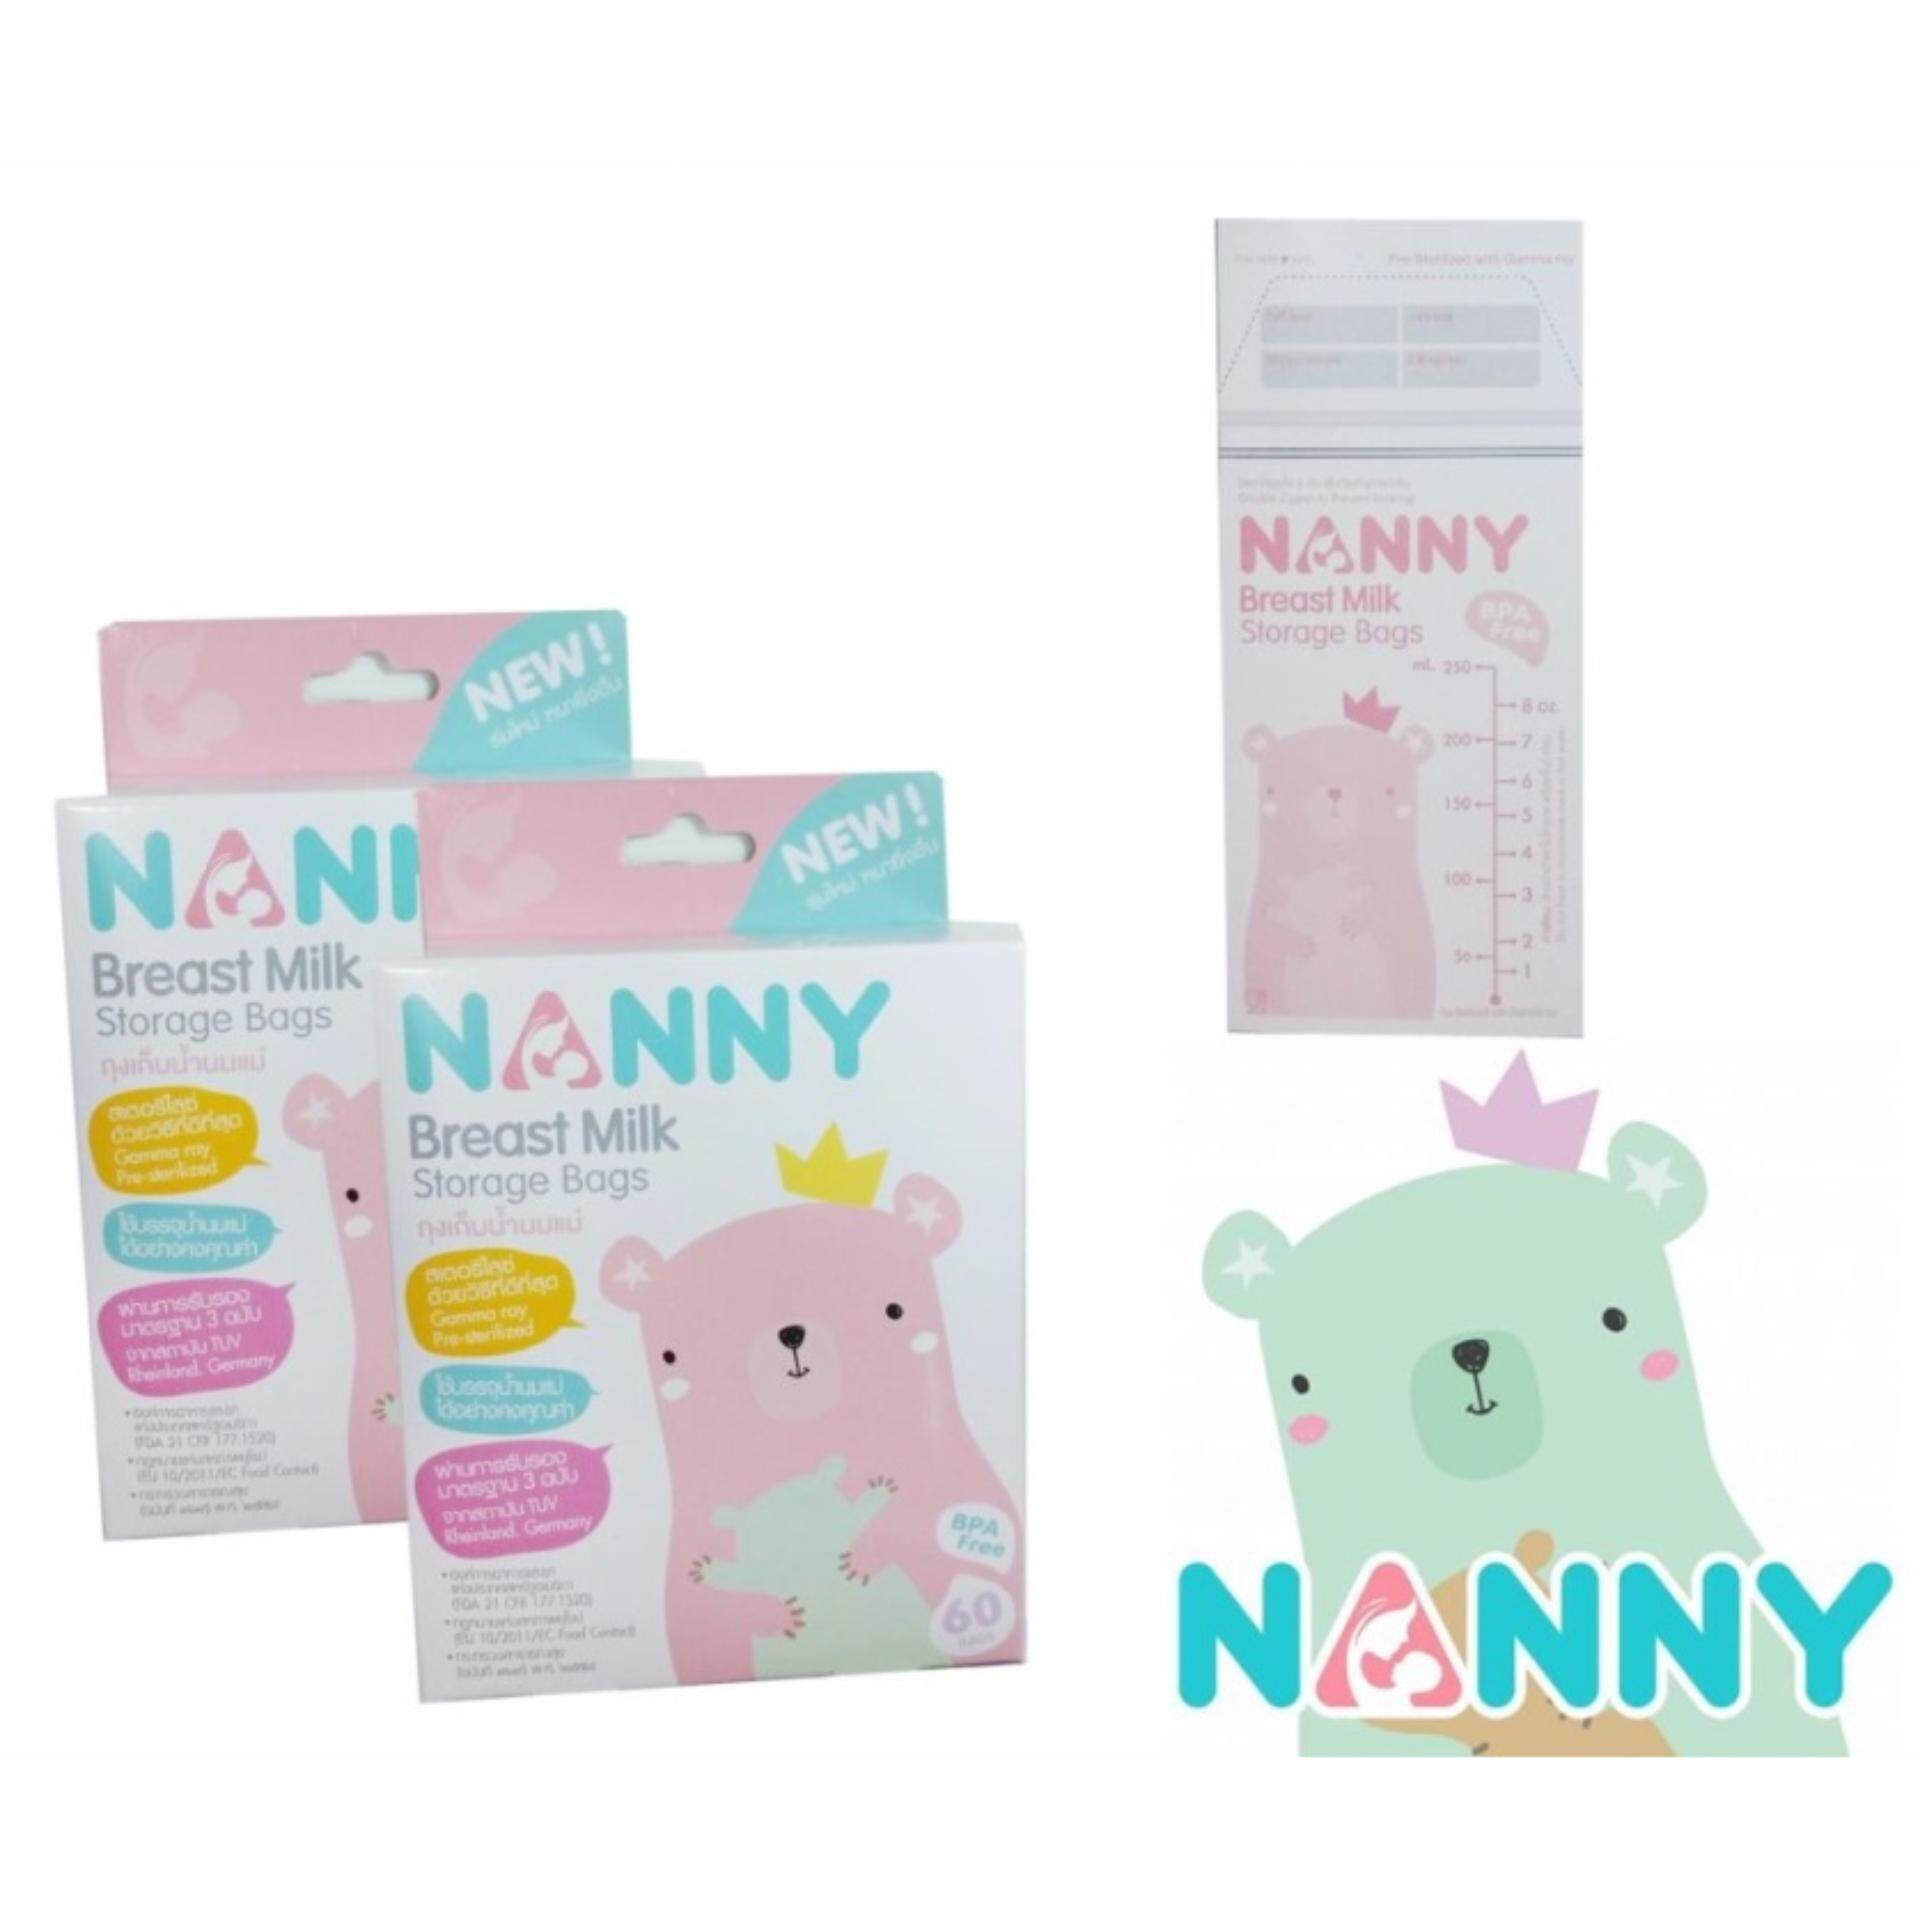 NANNY BREAST MILK STORAGE BAGS 250ML/8oz -60s'